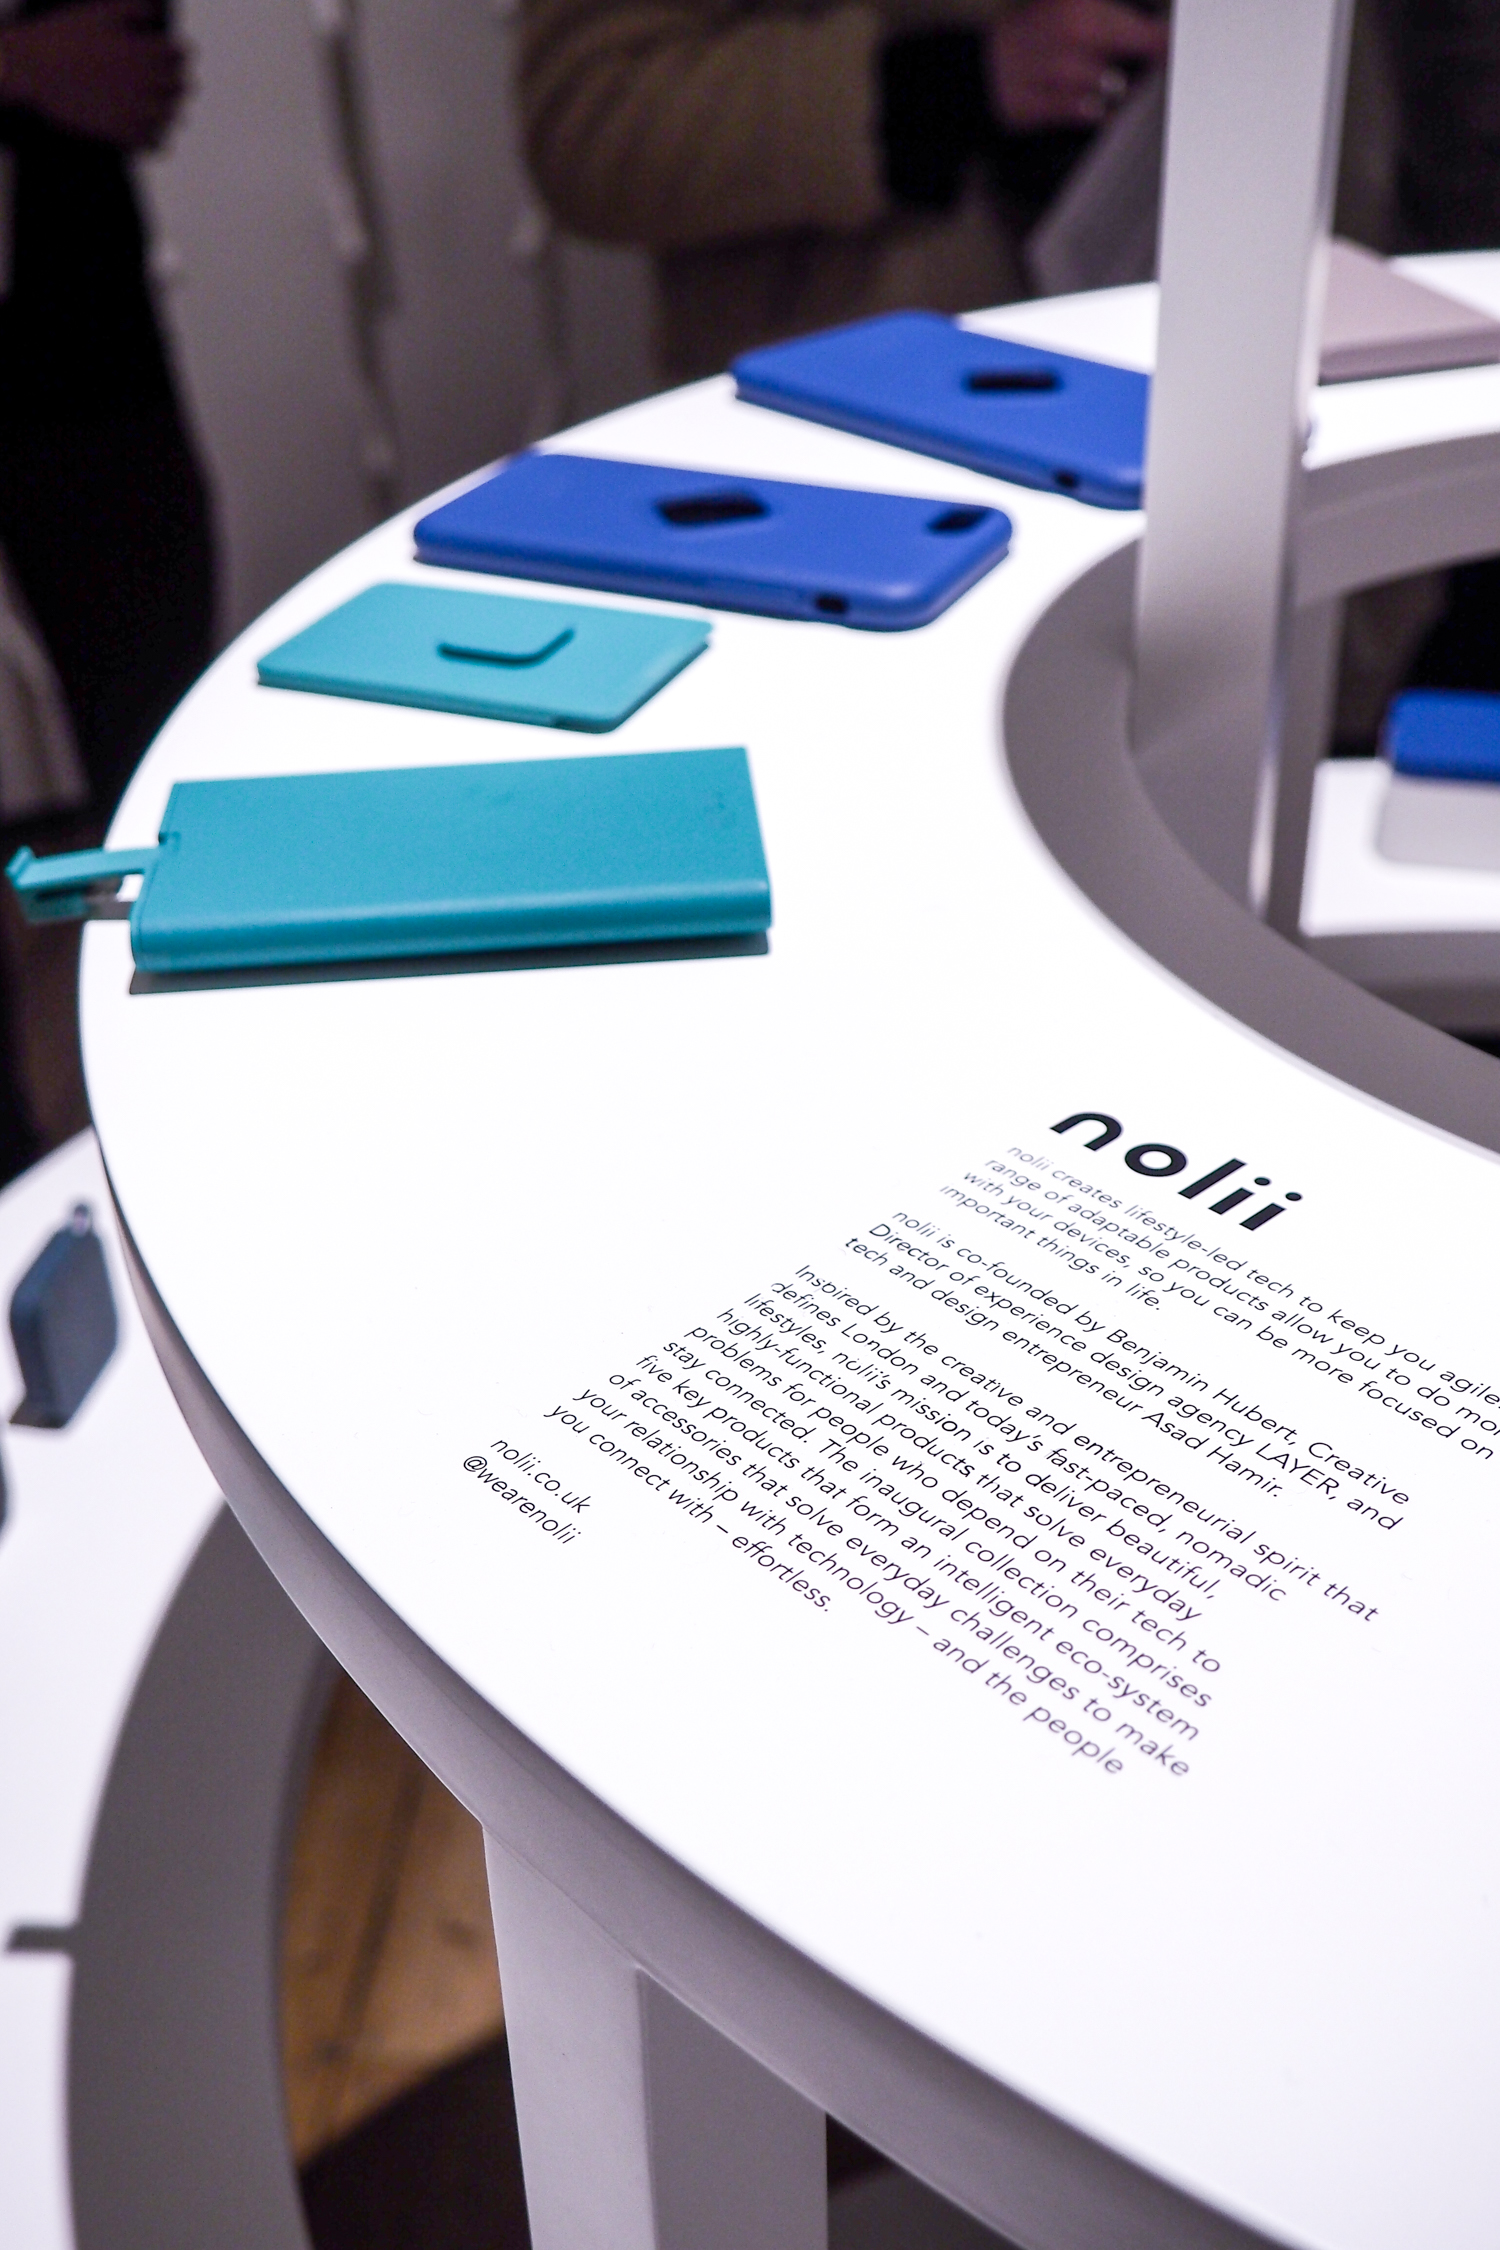 5. power gets sexy - new brand nolii introduced their range of design led powerbanks